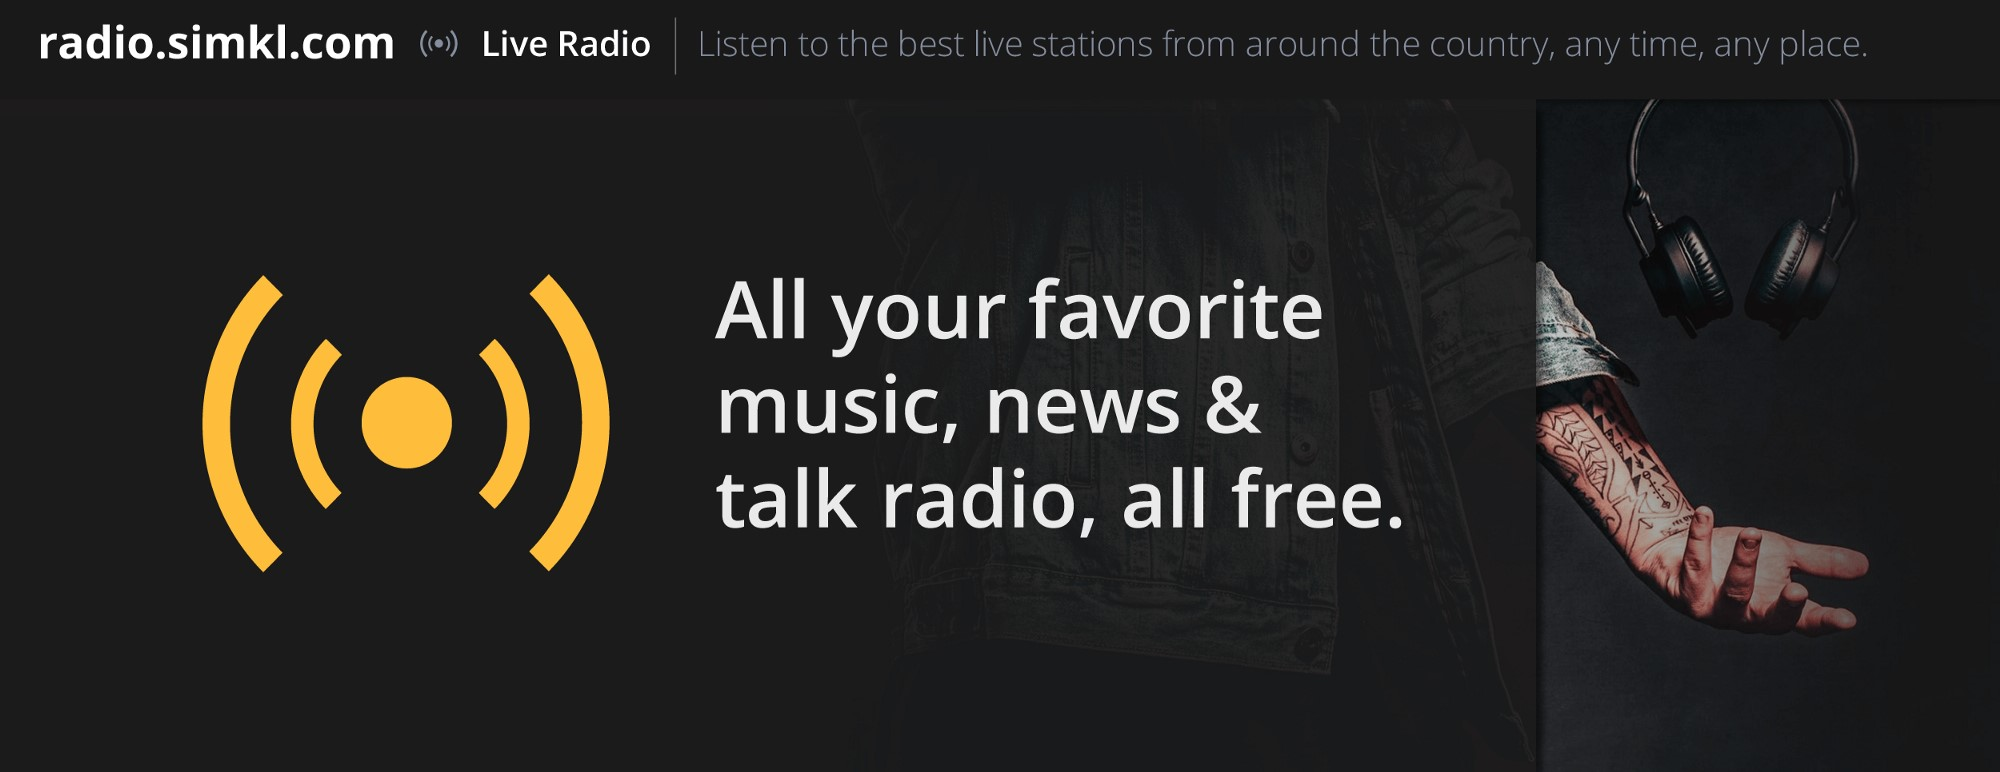 Simkl Radio screenshot 2